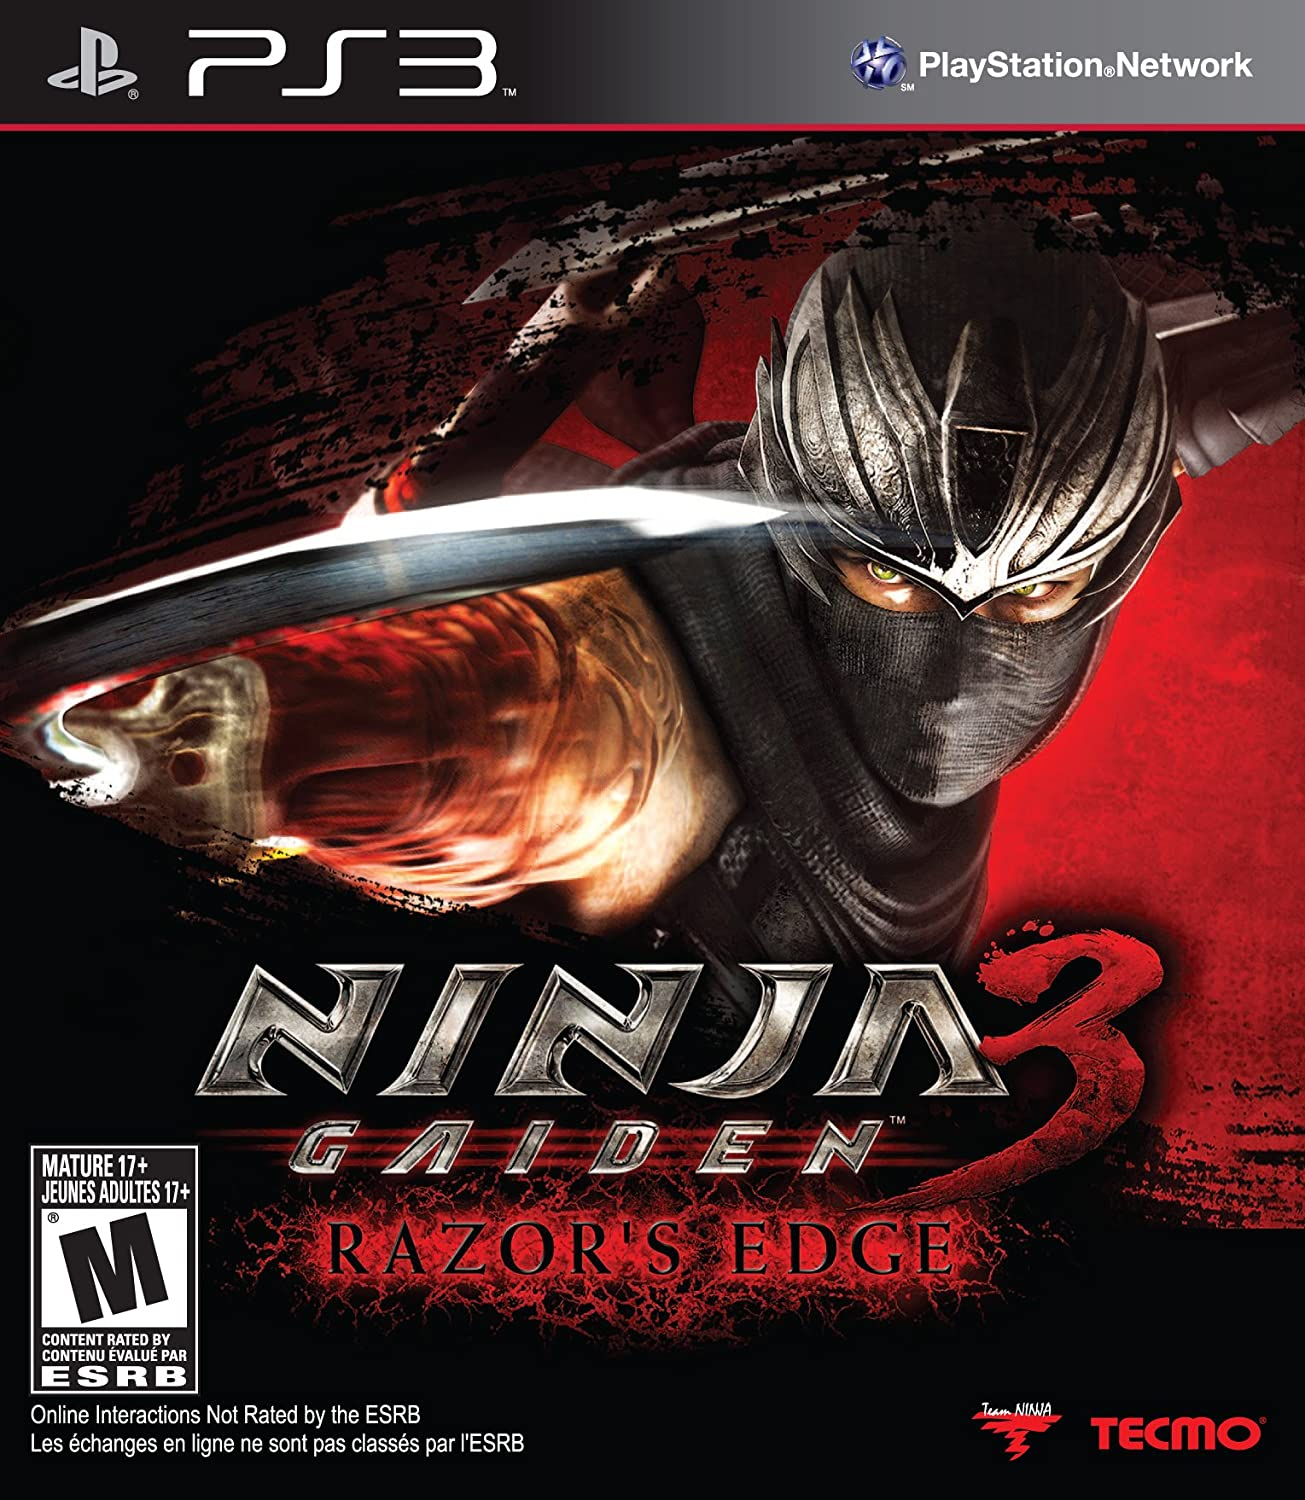 Amazon.com: Ninja Gaiden 3: Razors Edge - Playstation 3 ...